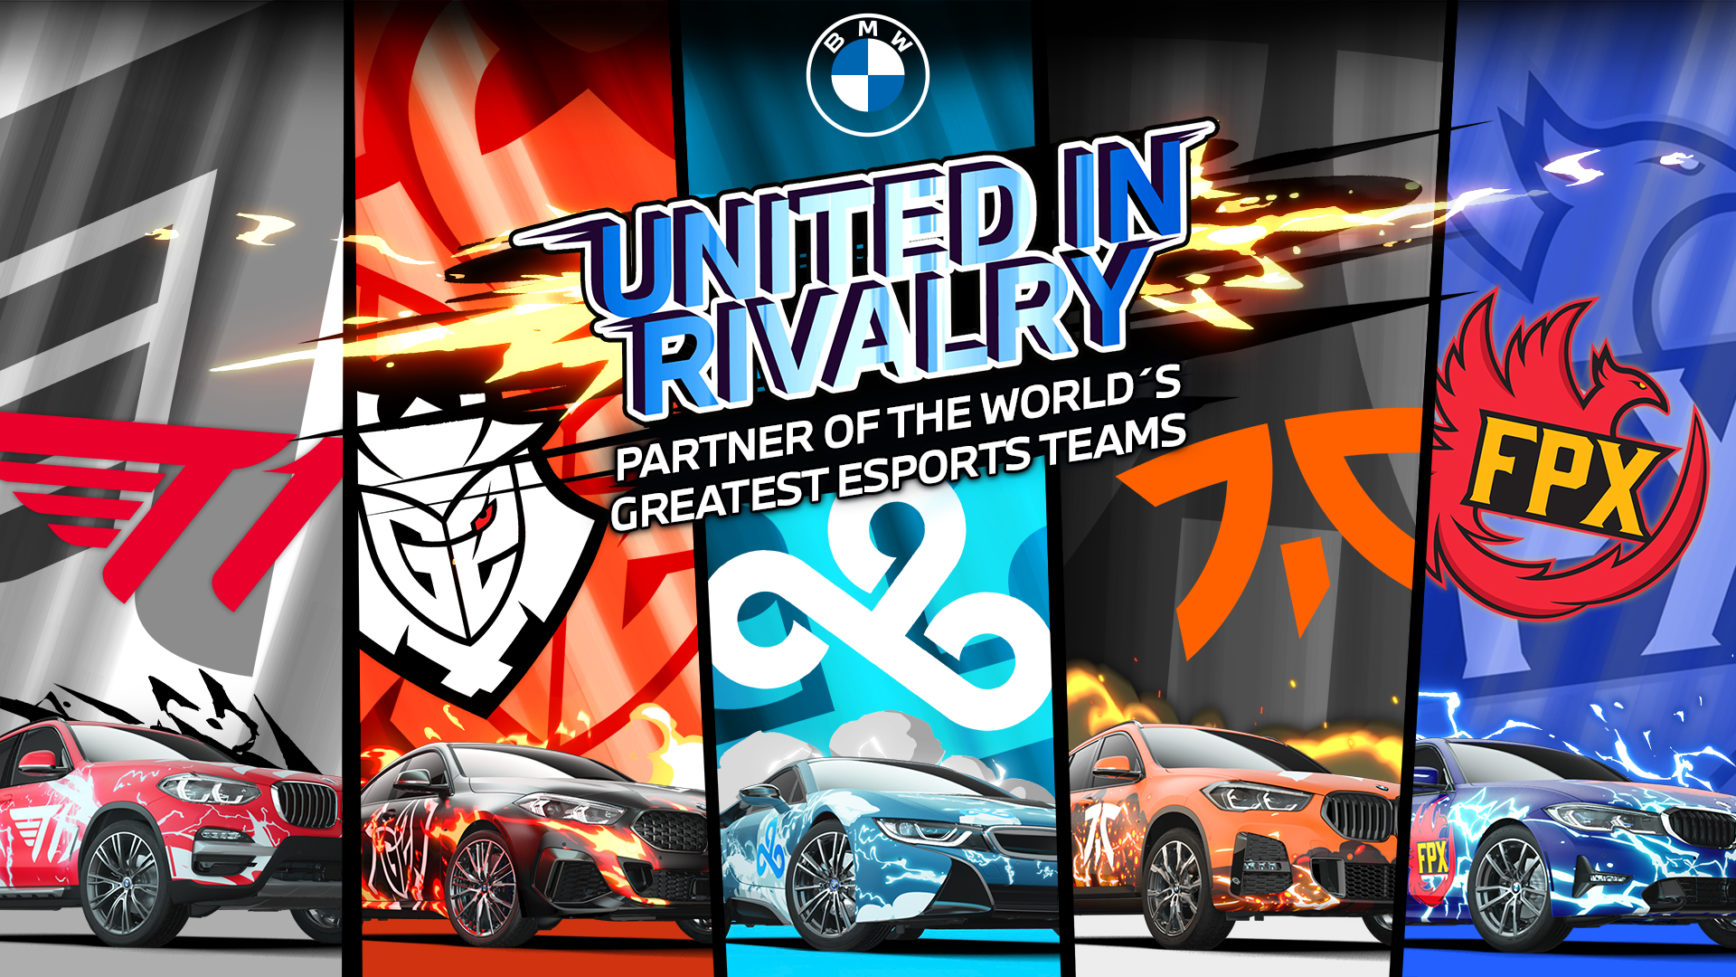 Team up - BMW - Top5 leading esports teams - cover